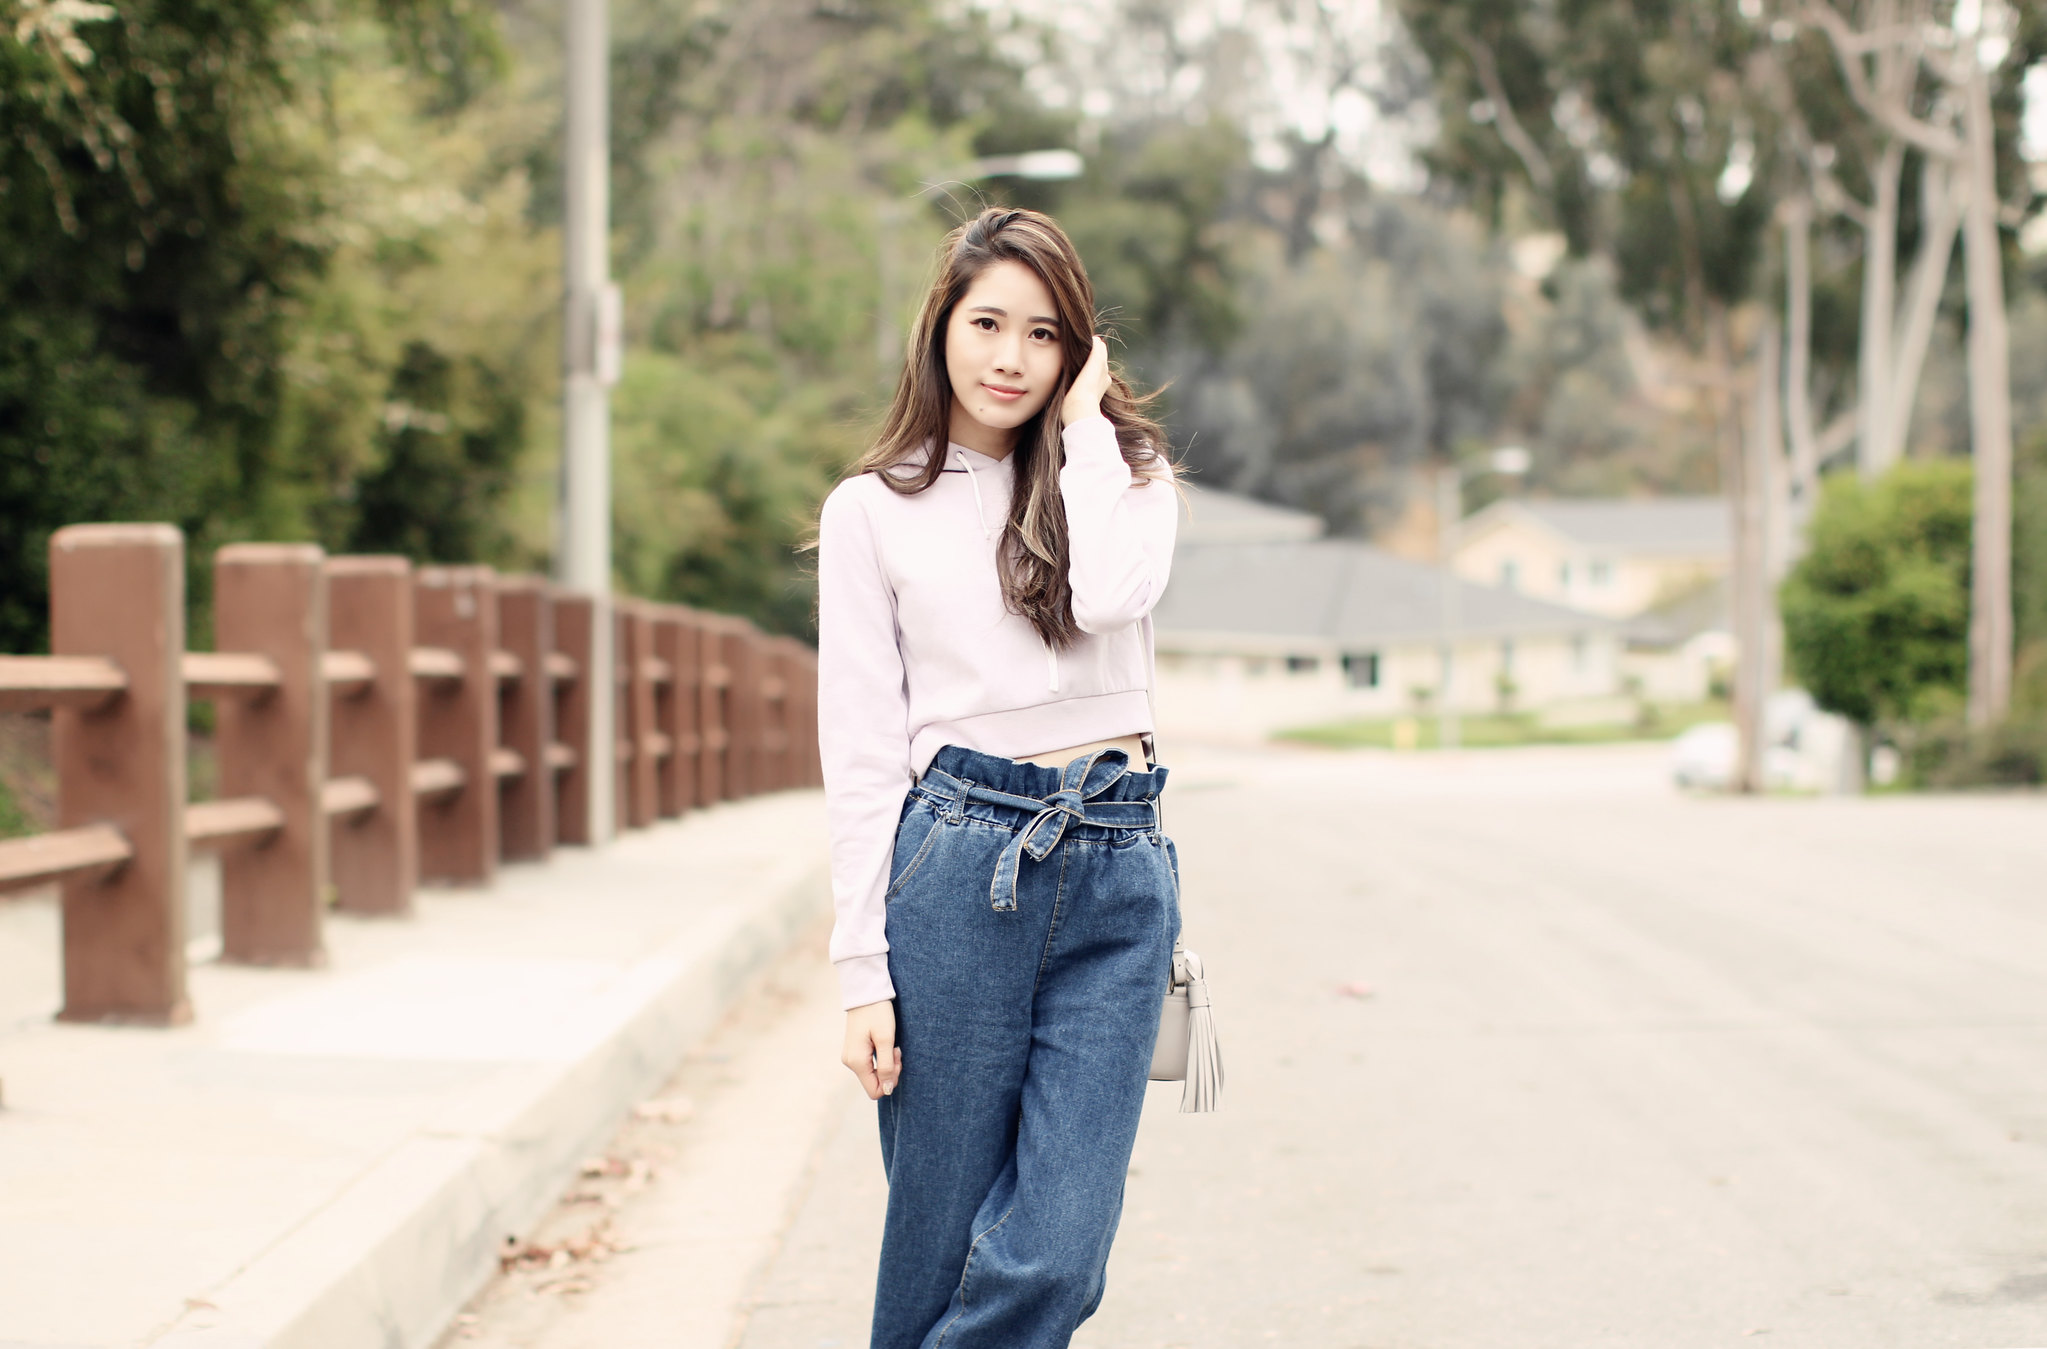 5061-ootd-fashion-style-outfitoftheday-wiwt-streetstyle-zara-f21xme-denim-thrifted-guess-koreanfashion-lookbook-elizabeeetht-clothestoyouuu